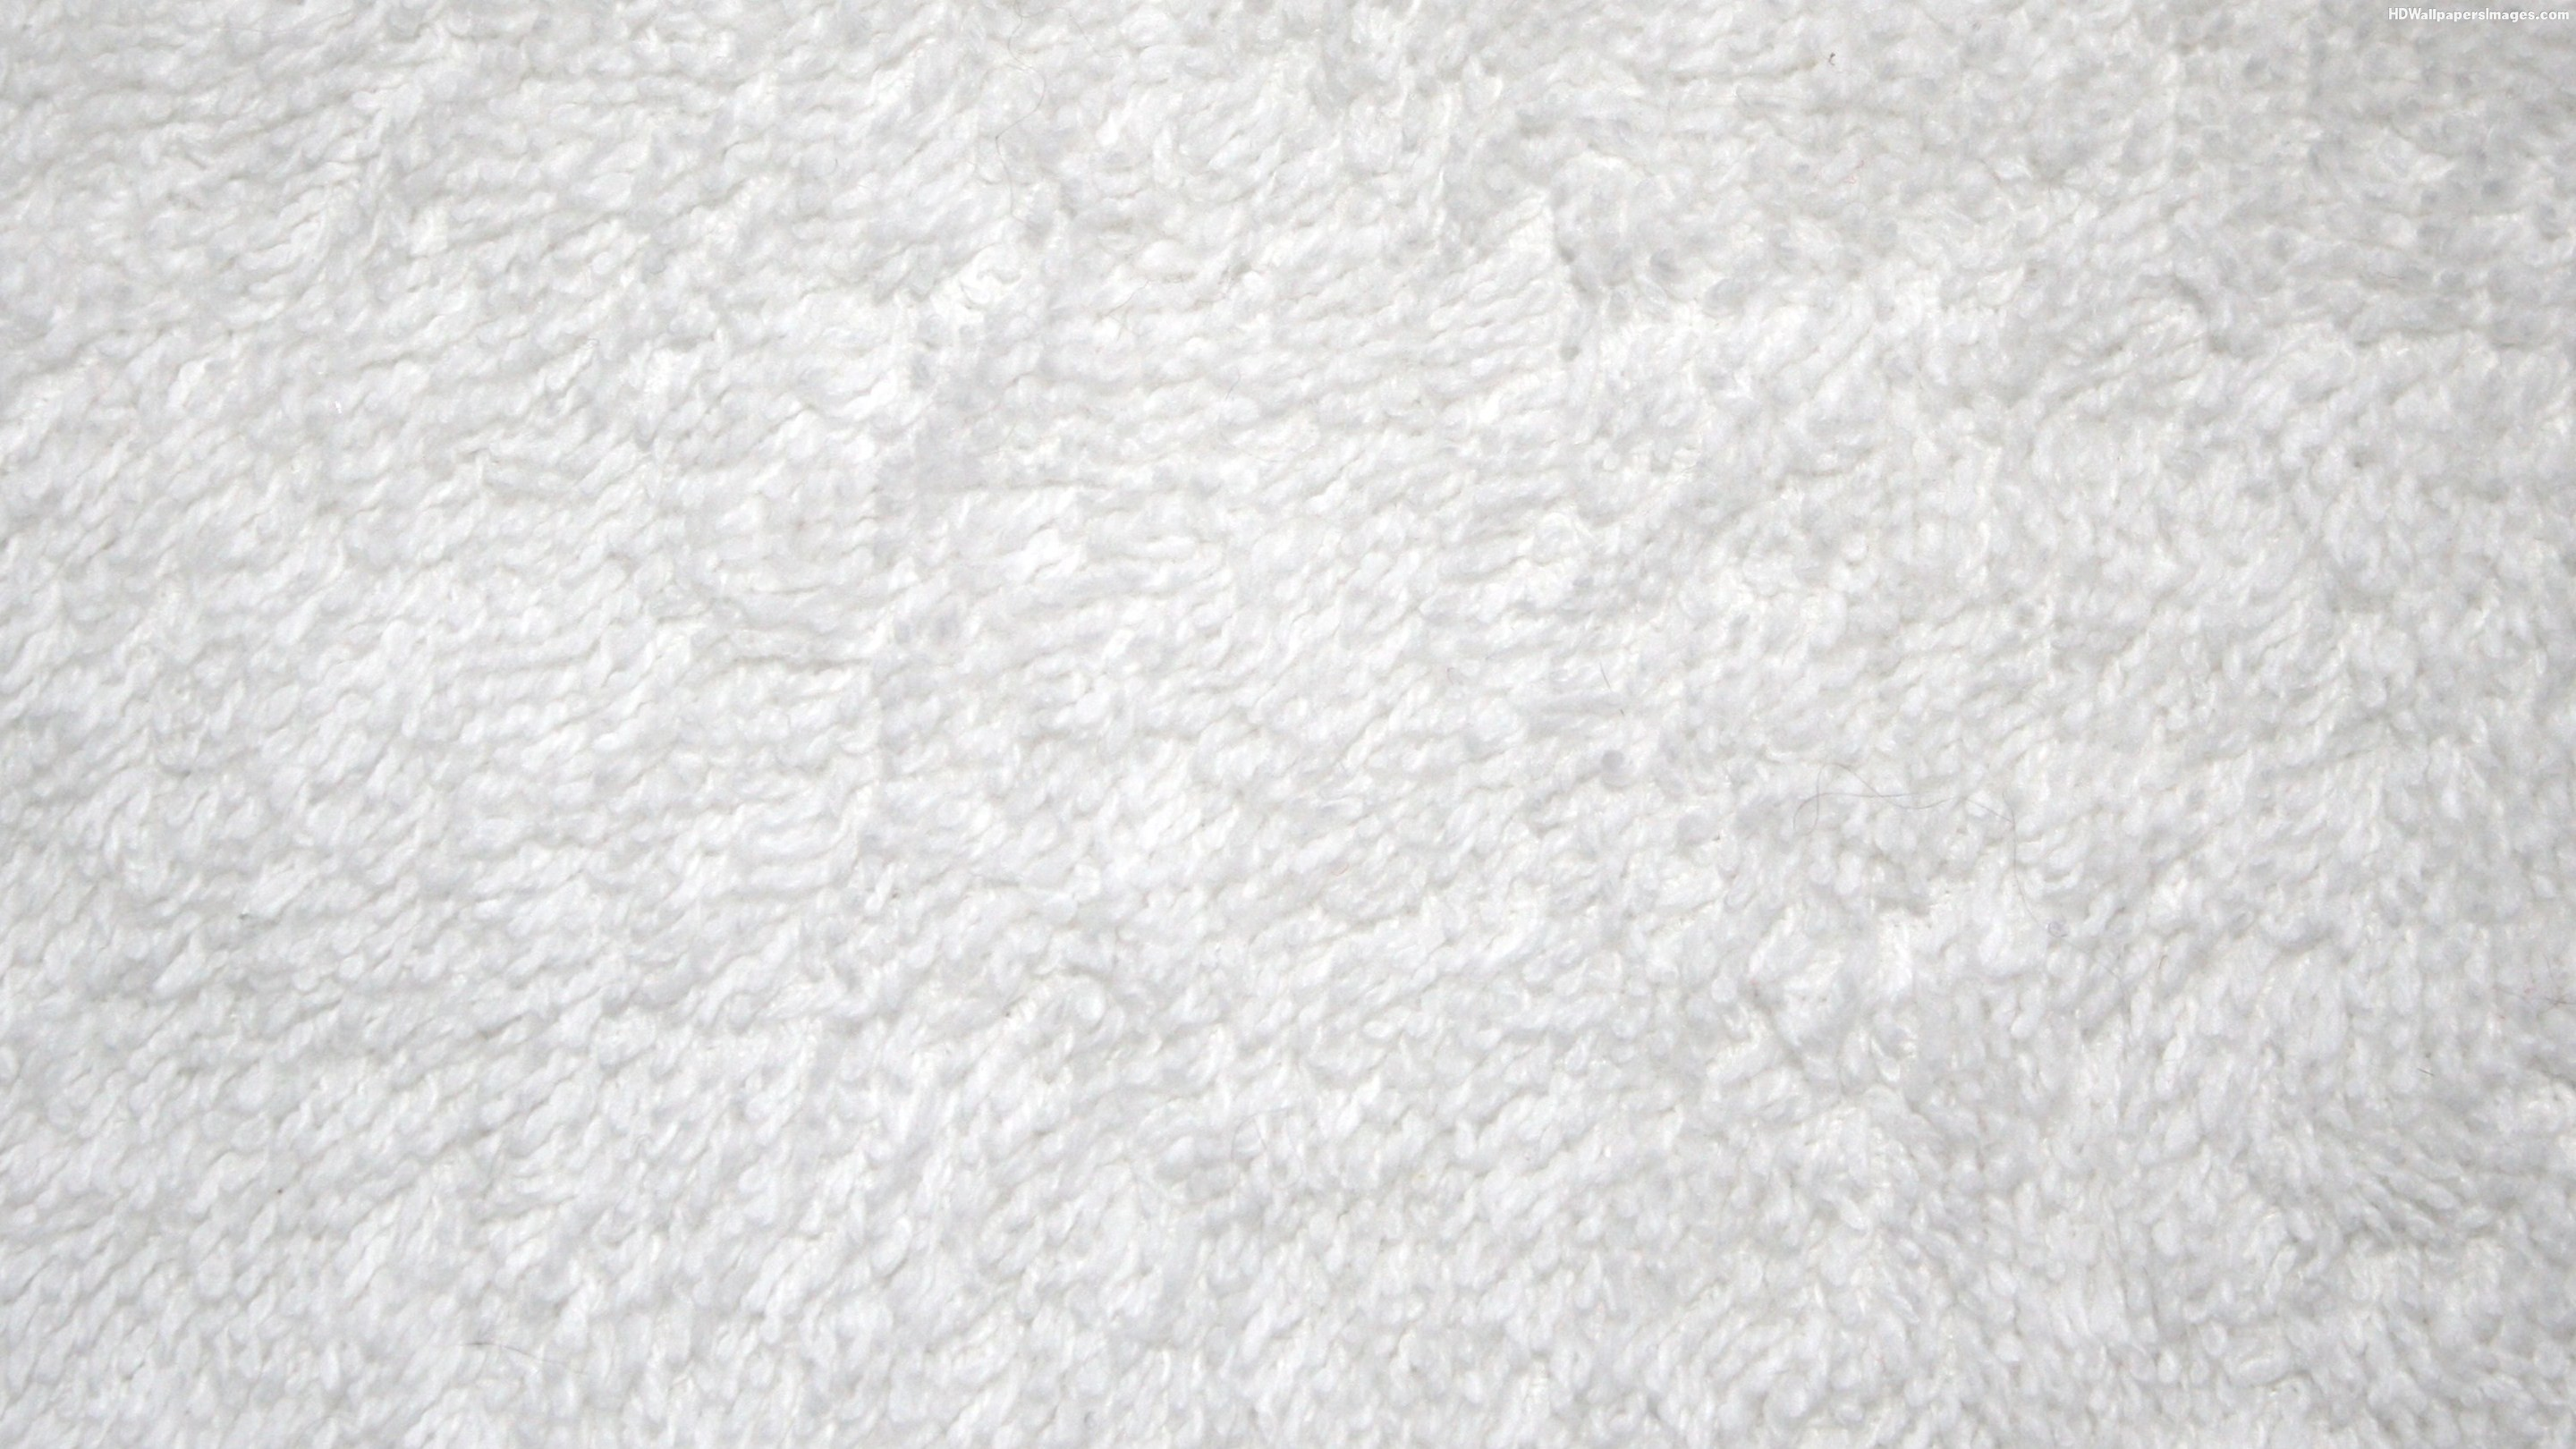 White Carpet Textures Images